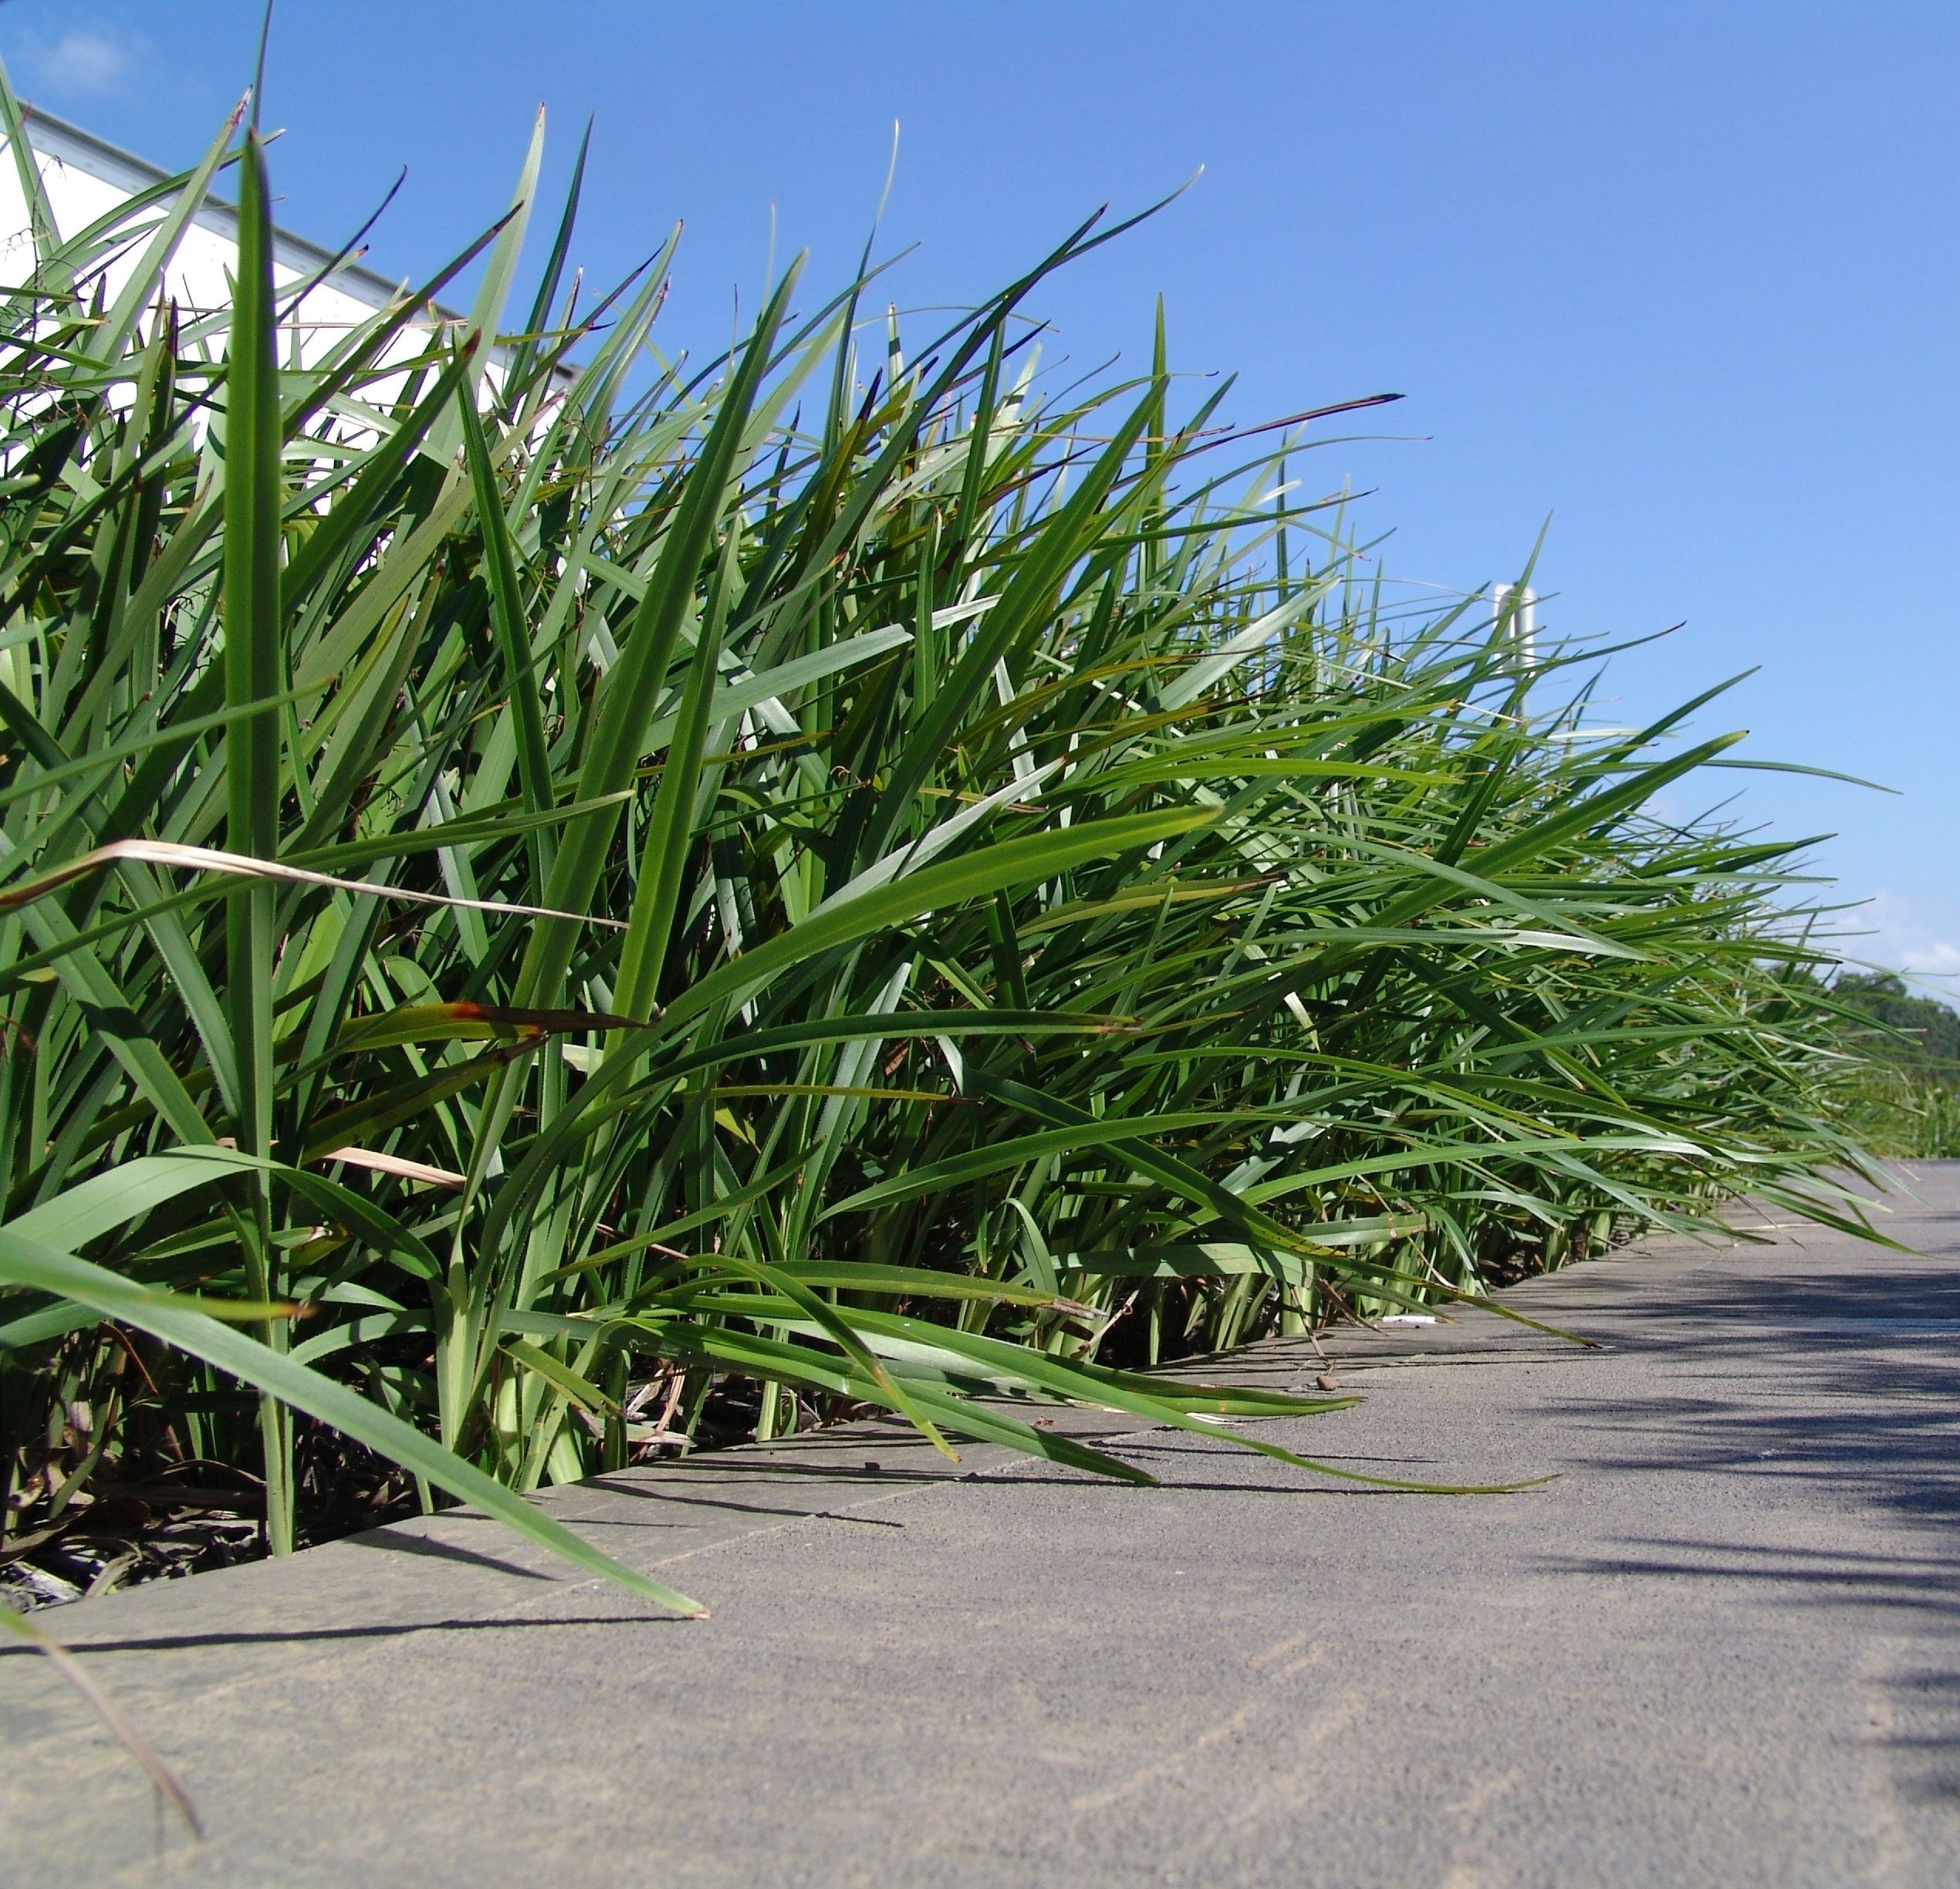 Httplawnclubblog3entry 15 breeze dianella is a breeze dianella is a spreading strappy leaf plant with no canes thecheapjerseys Image collections